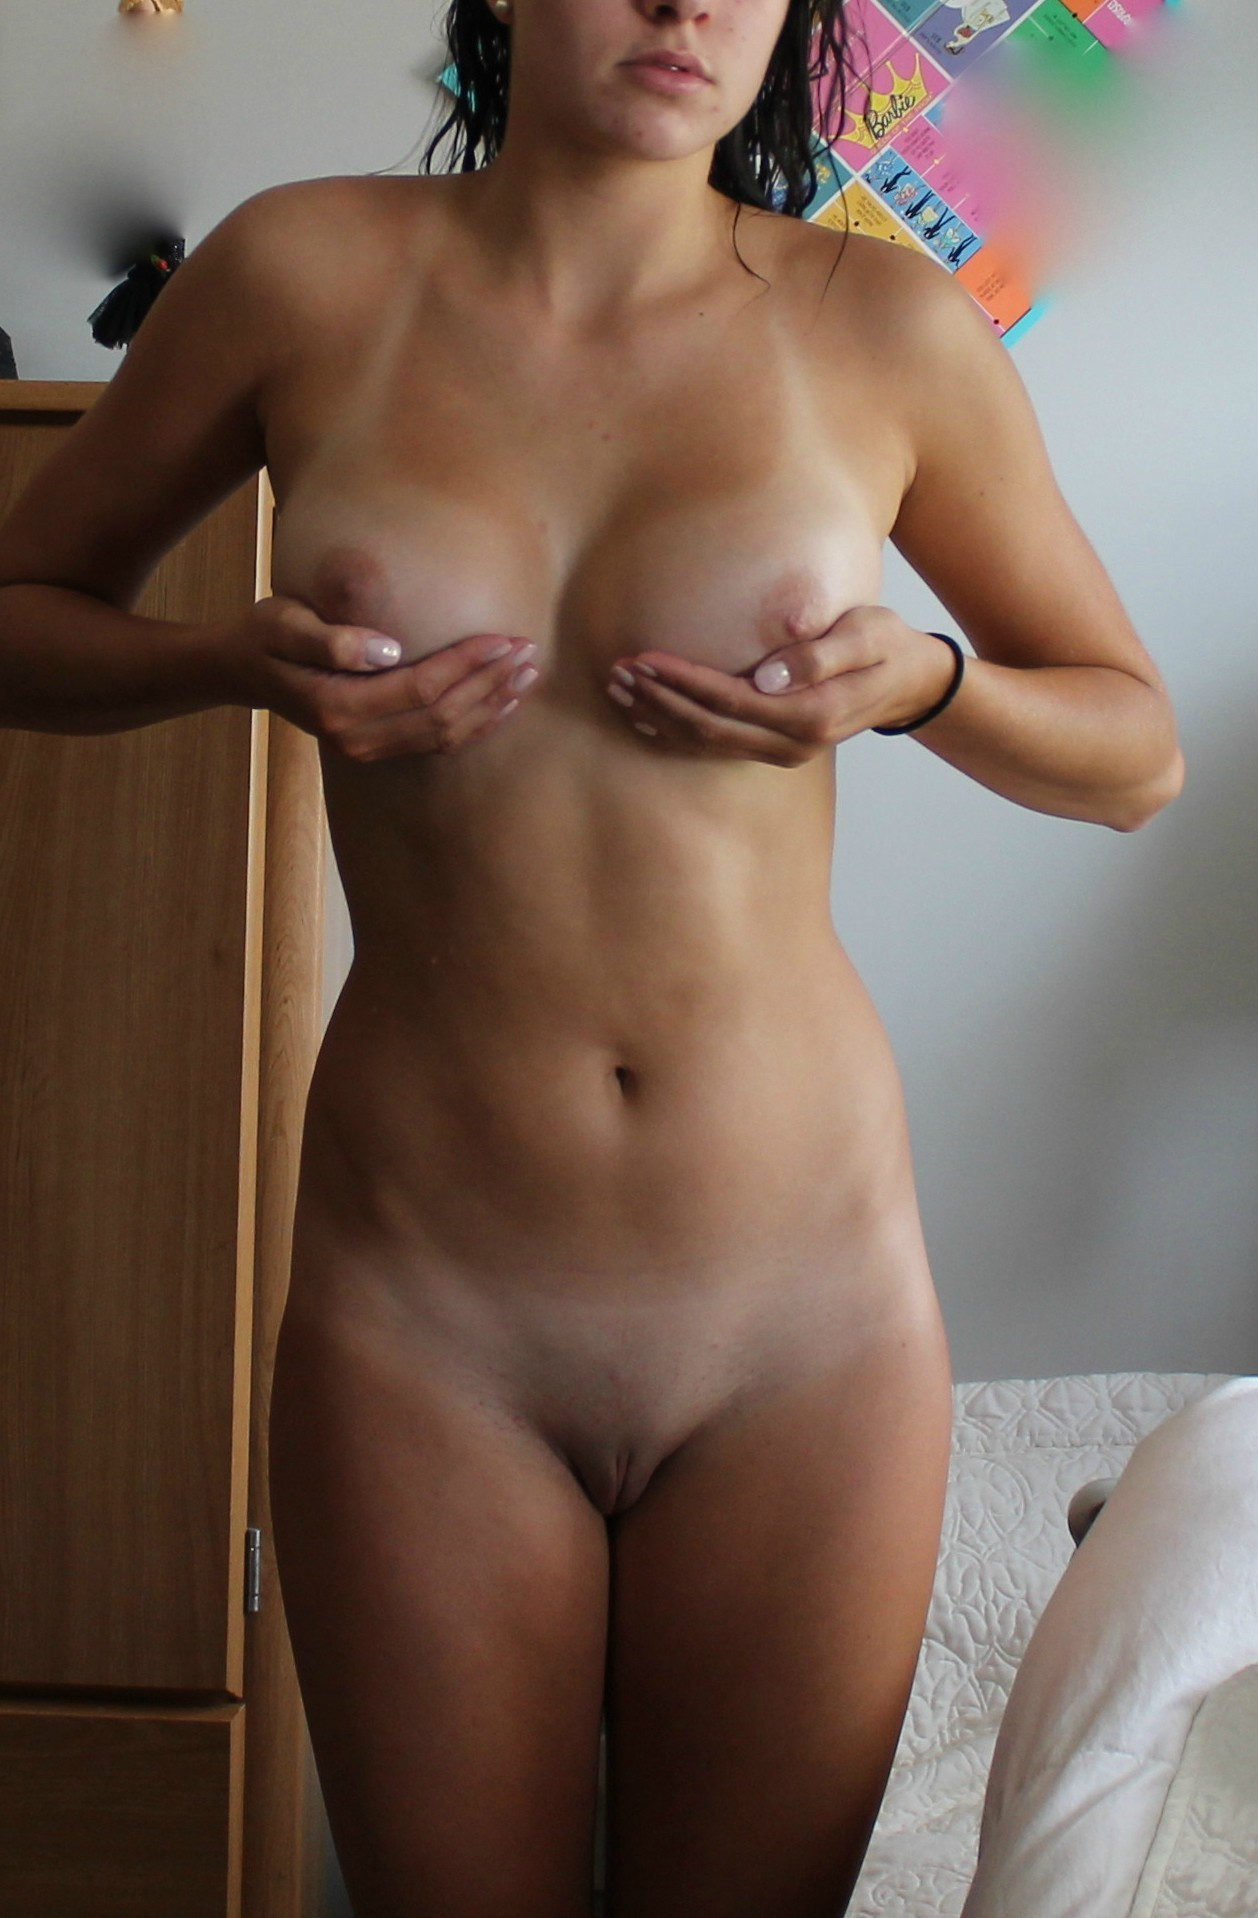 search interracial anal classic porn video classics porn 20, SexArt, Amazing, Babe, Beckoning, Blonde, Blueeyes, Facesofpleasure, Fingering, Goddess, Gorgeous, Hardnipples, Hot, Hotbody, Jennywild, Knuckledeep, Masturbating, Nicetits, Oface, Openmouth, Perfect, Perky, Shaved, Slim, Smalltits, Spreadpussy, Stunning, Tanlines